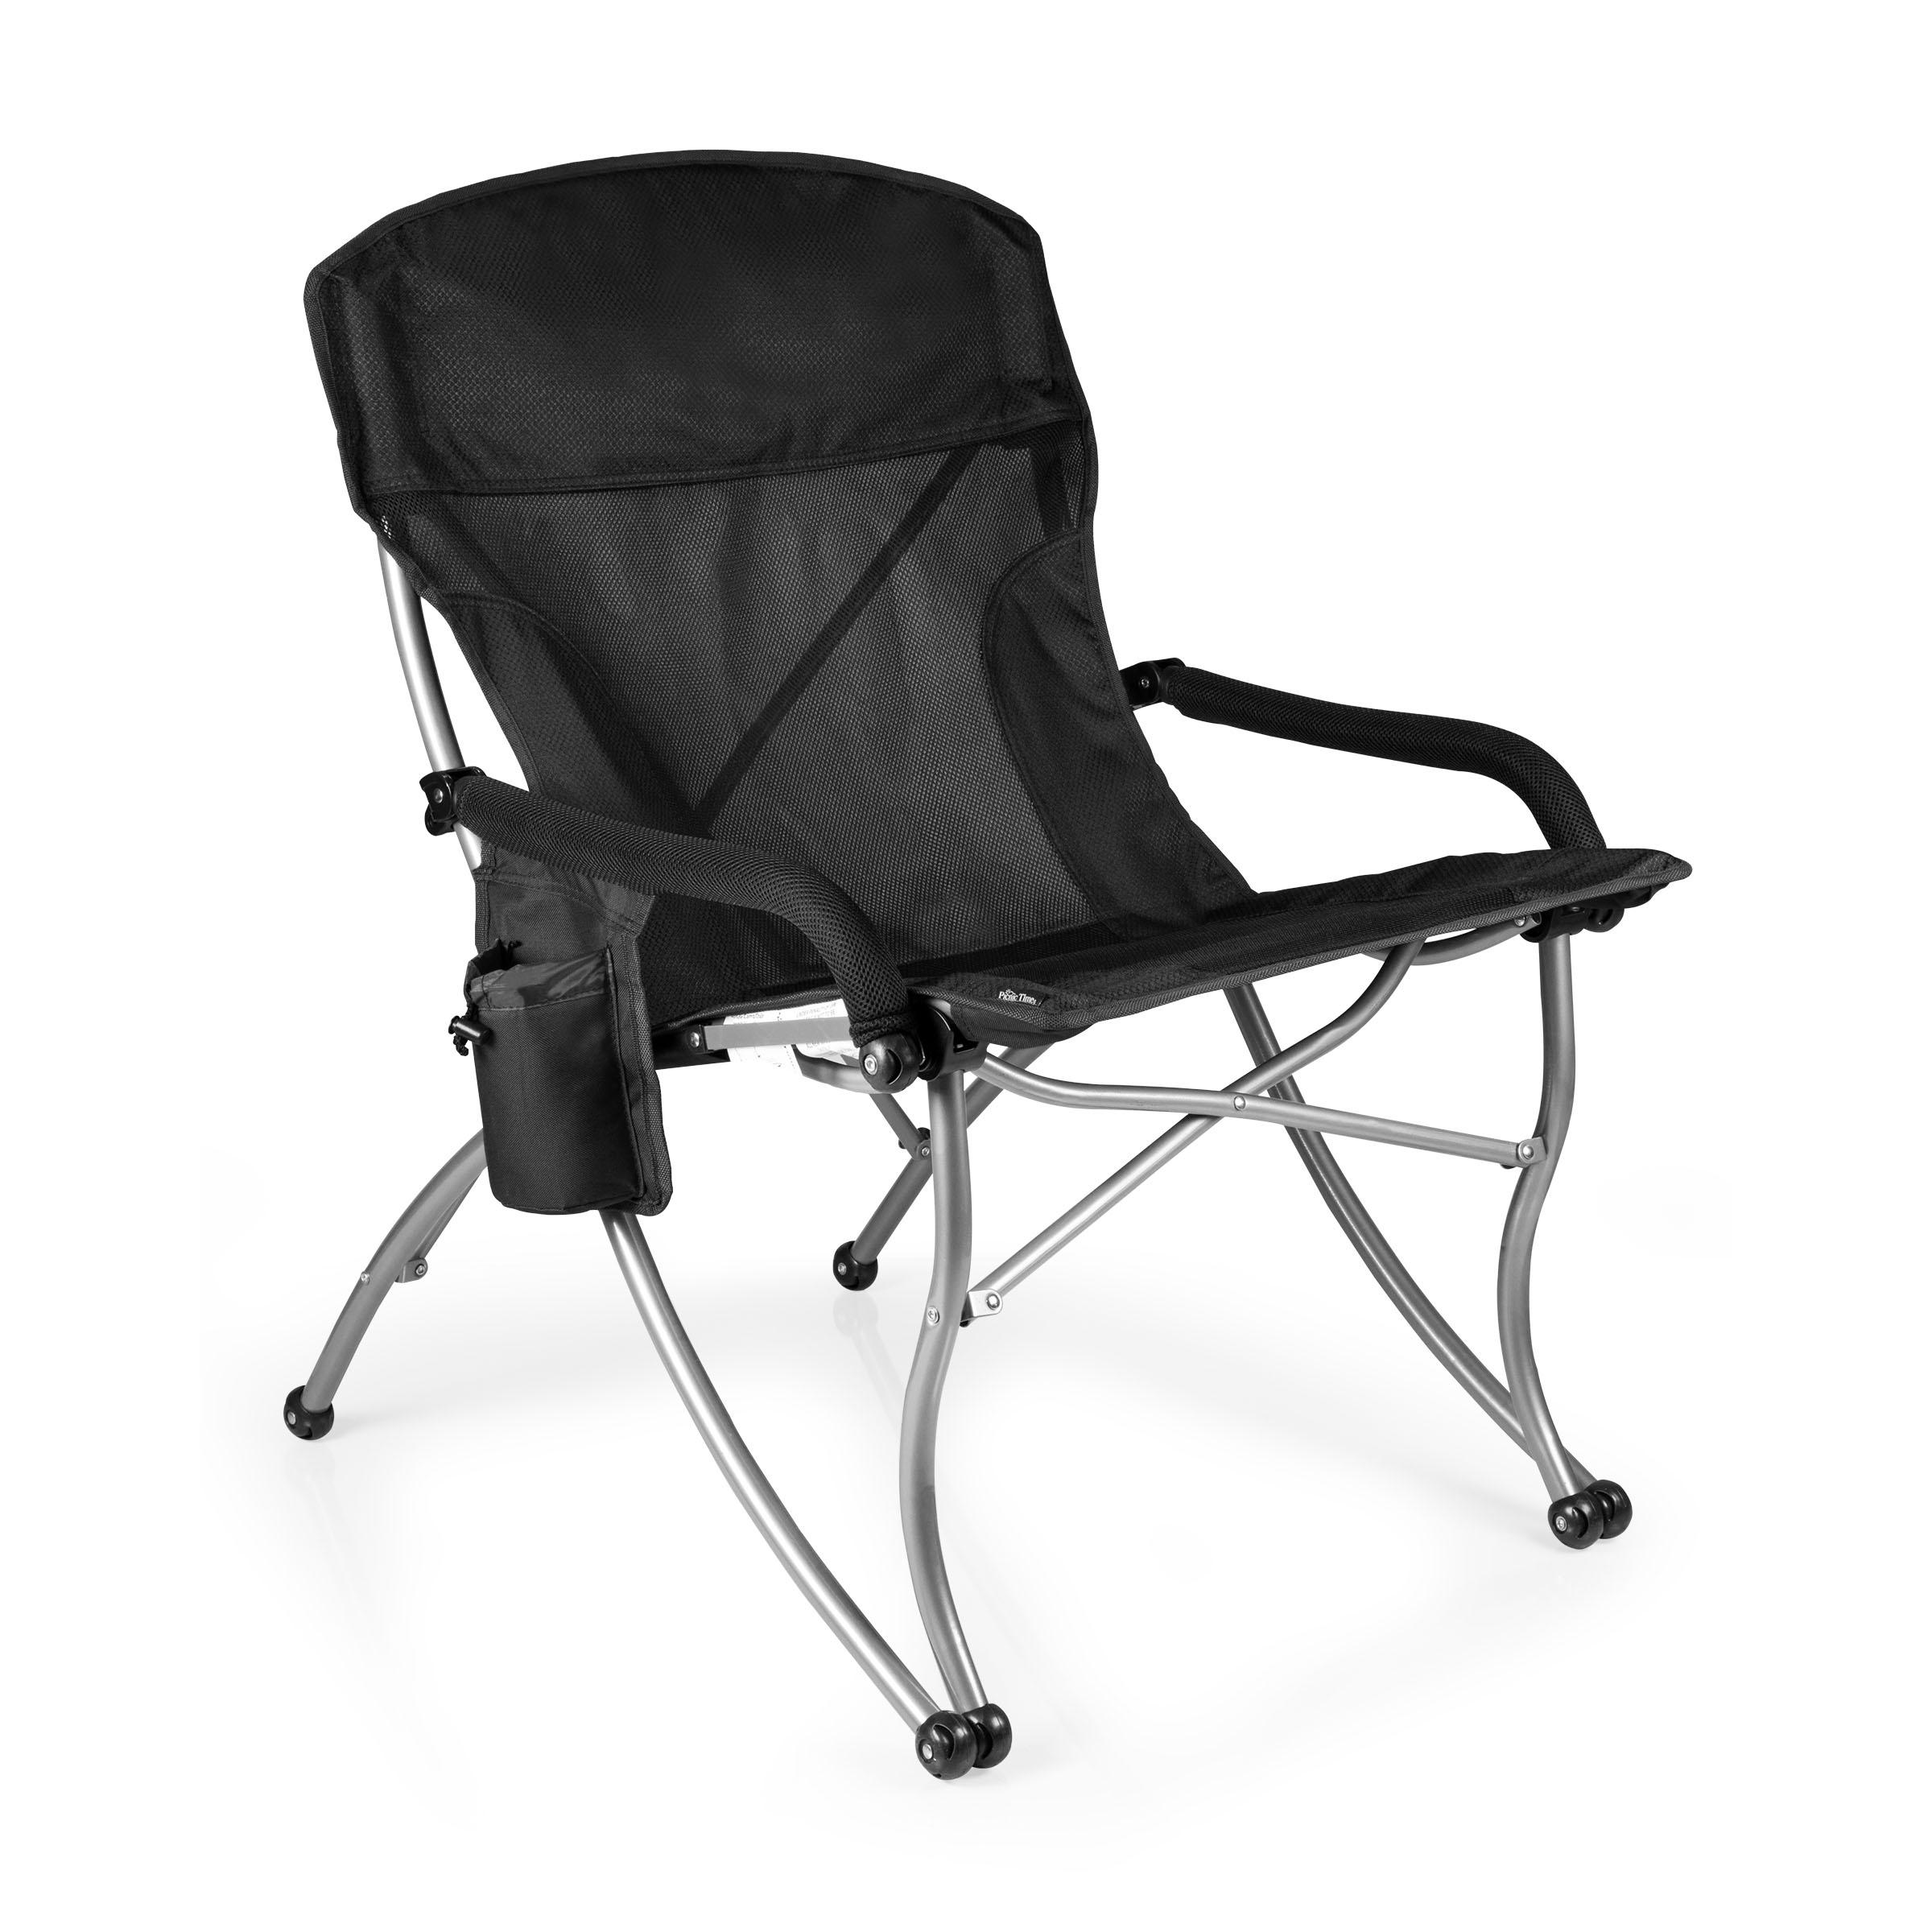 Pt-xl Camp Chair Black